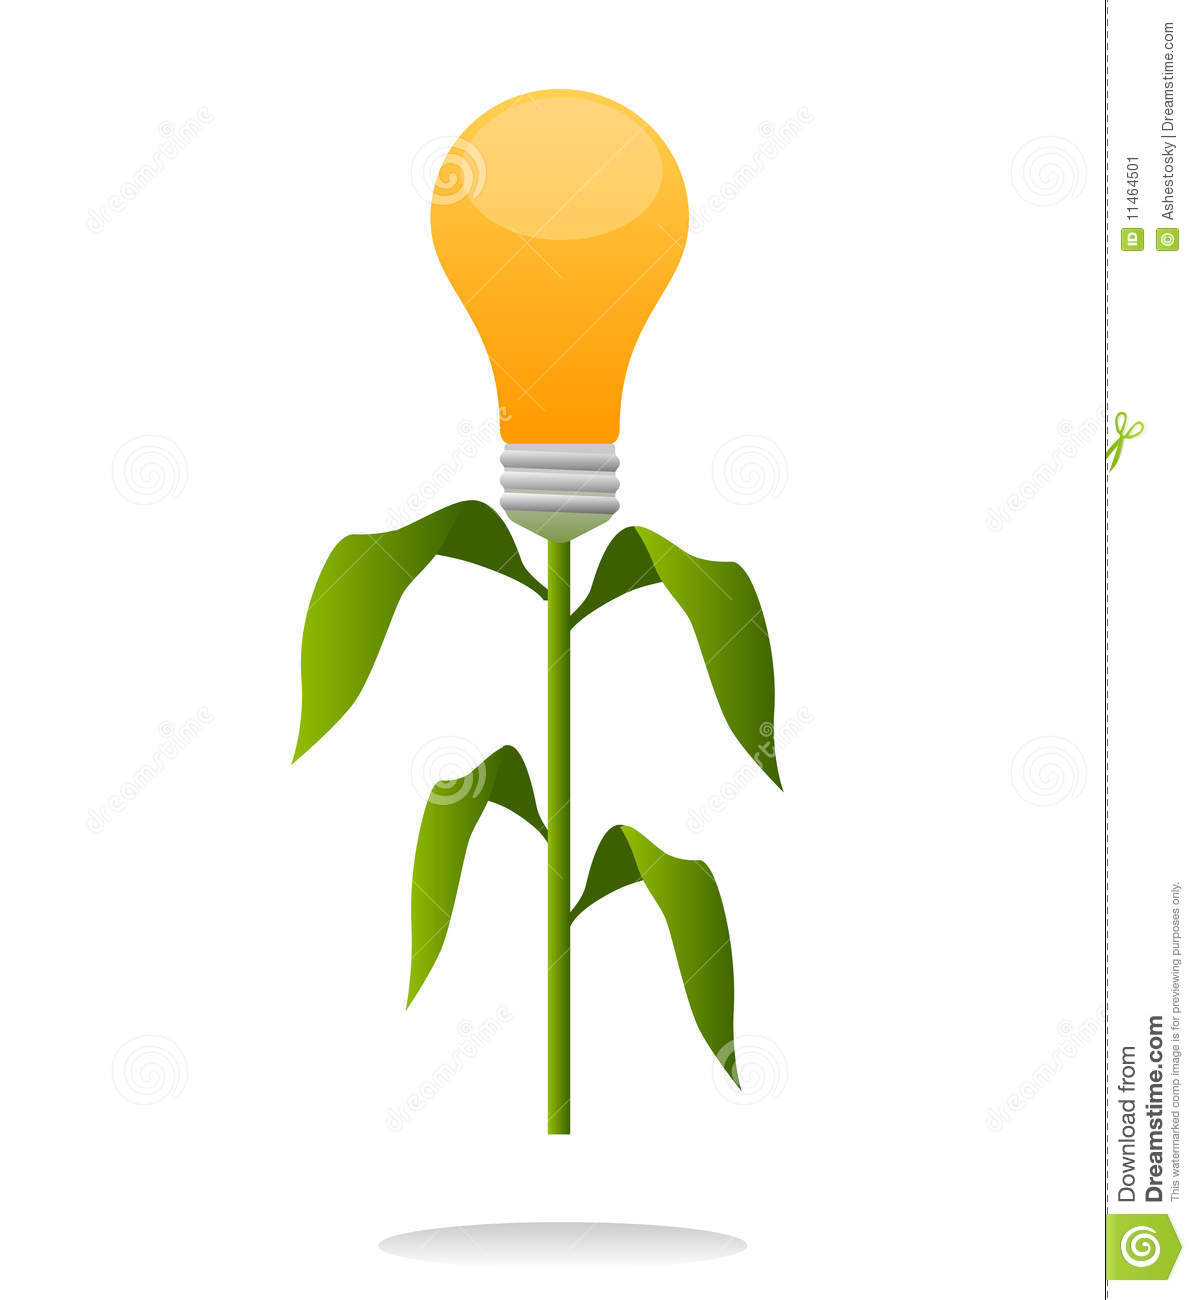 Natural Resources Clip Art : Natural power clean energy artwork stock image